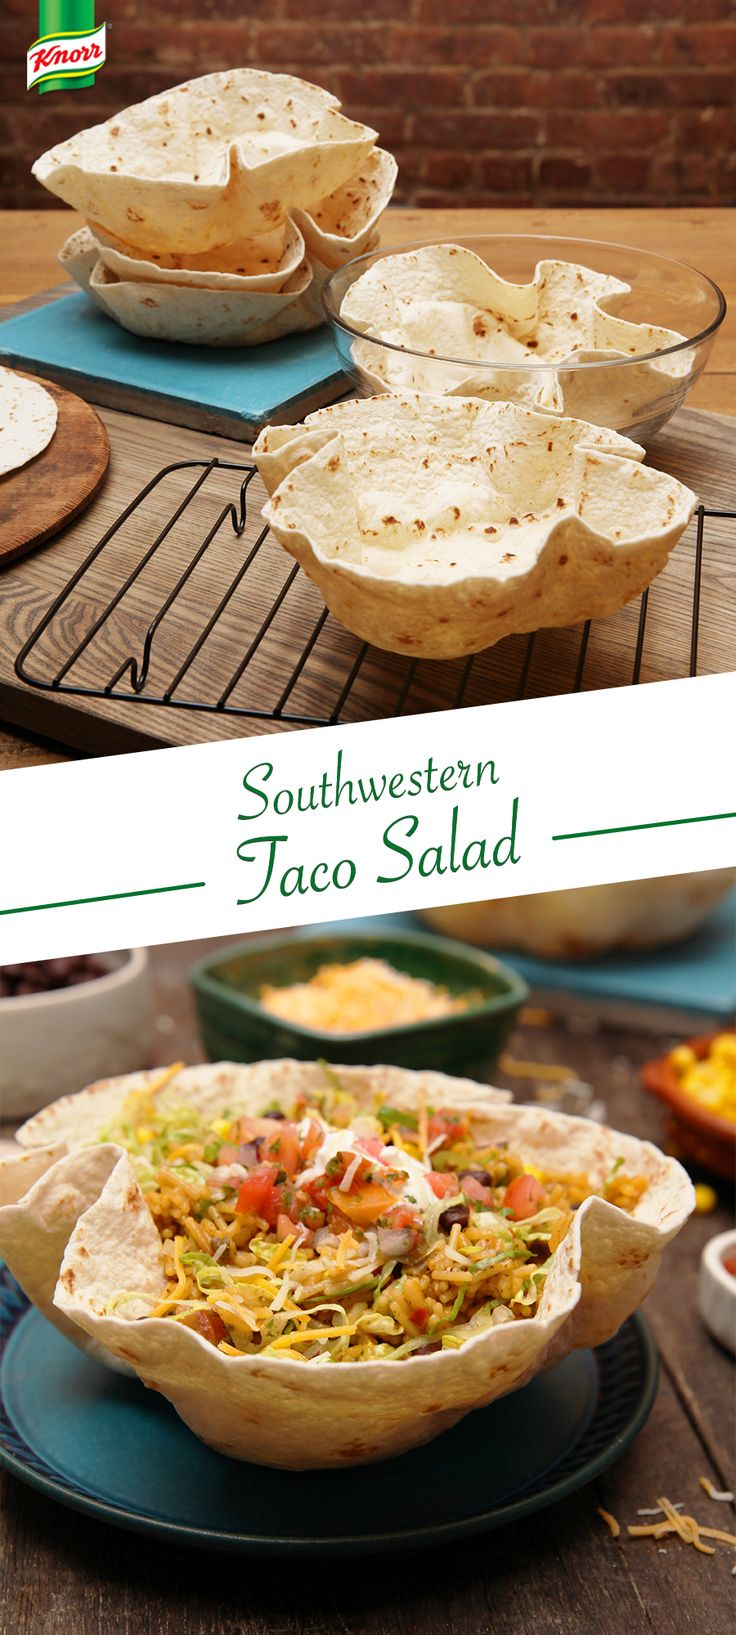 Put some color in that tortilla bowl with a Southwestern Taco Salad recipe you're bound to love! Press 1 tortilla into a microwave-safe bowl to form bowl shape. Microwave at HIGH 1-1/2 mins. Let cool. Gently lift out & arrange on serving plate. Repeat w/ remaining tortillas. In saucepan used to cook Spanish Rice, combine rice, black beans & corn; heat through. In tortilla bowls, evenly arrange lettuce. Evenly top w/ rice mixture, then sprinkle w/ cheese. Top w/ your favorite toppings.